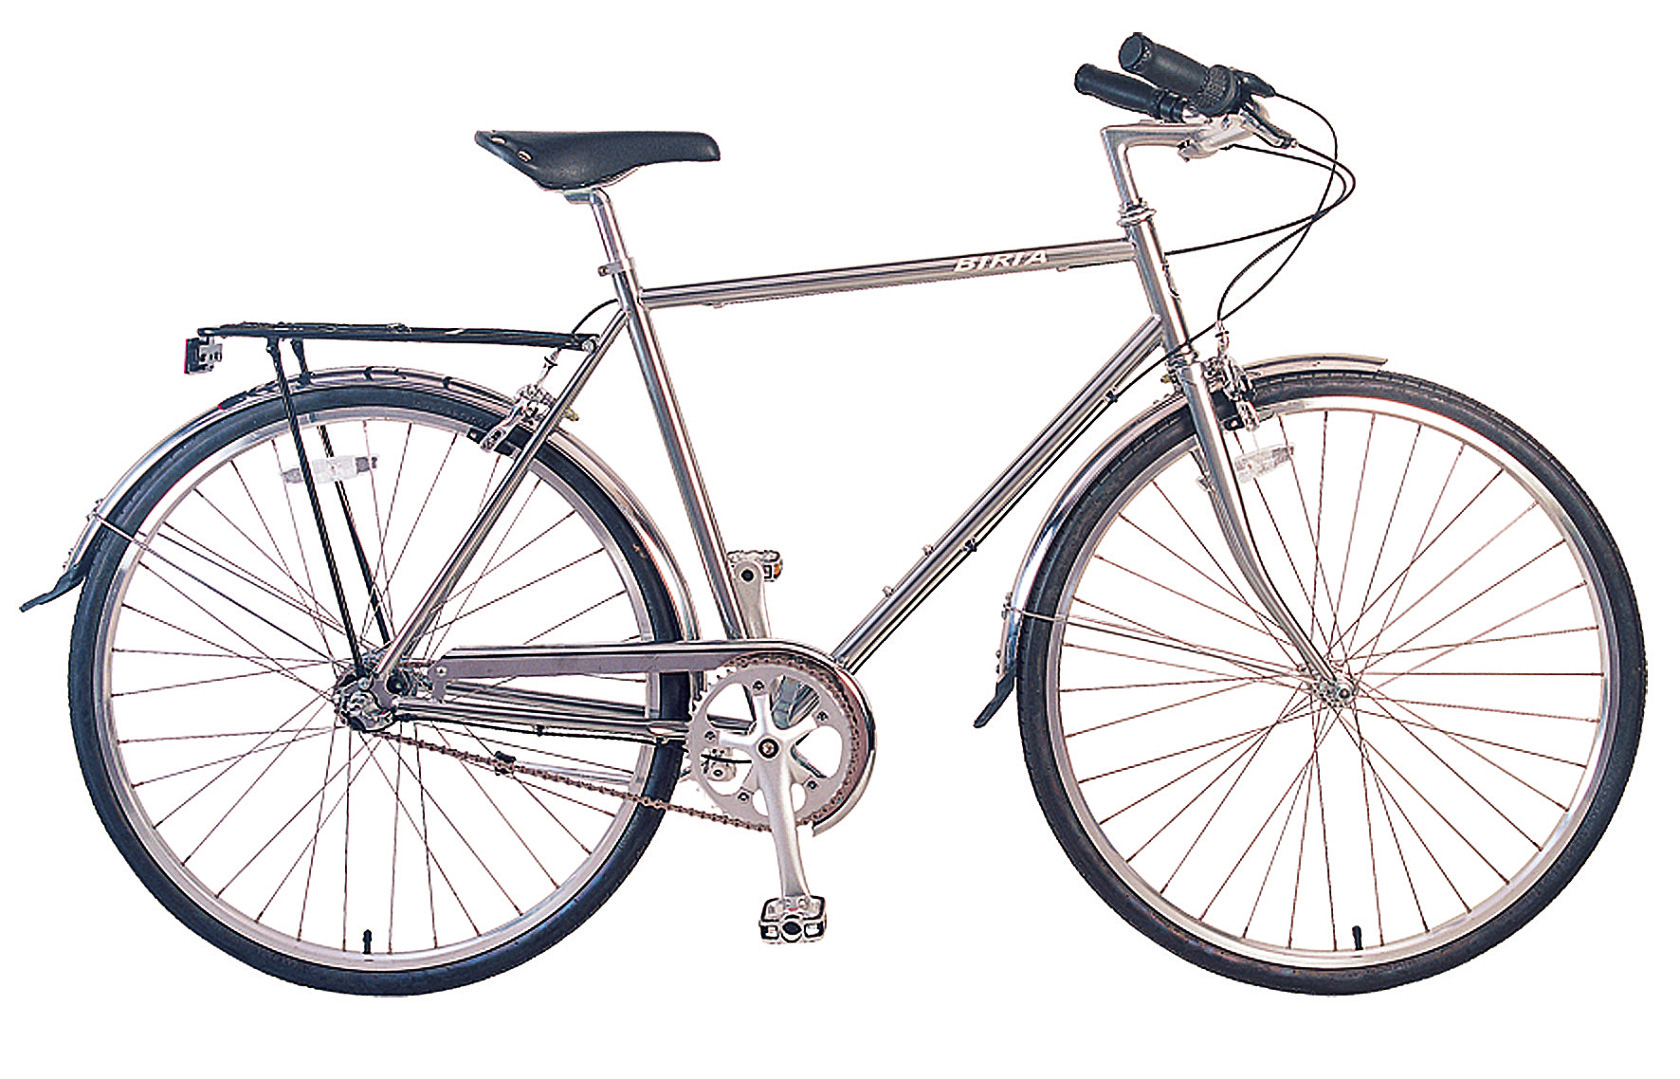 Biria CitiClassic Sport i3 City Bike Review